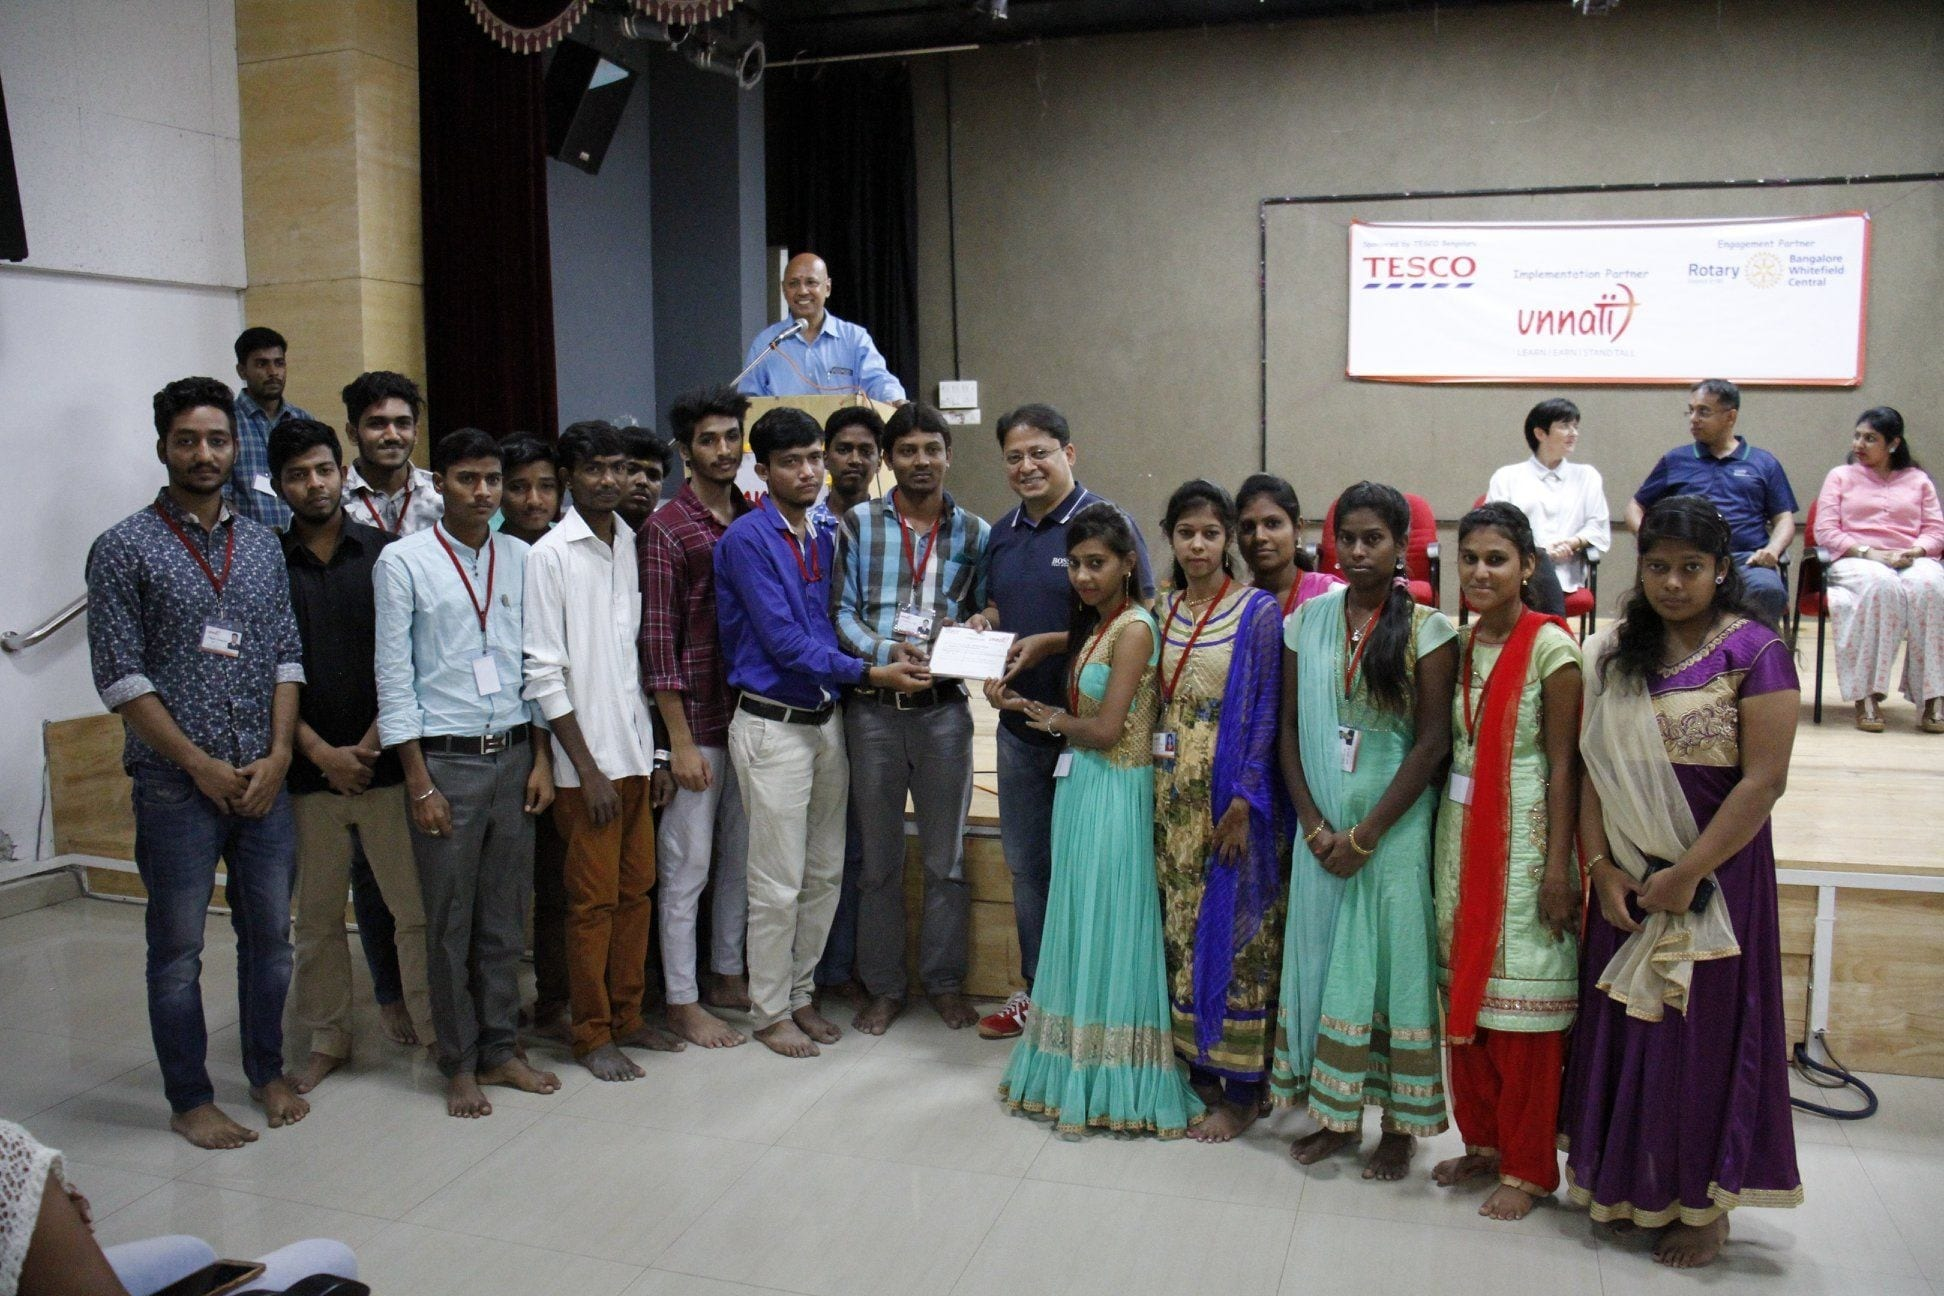 Tesco Bengaluru Helps Over 320 Underprivileged Youth Stand Tall Through Life Skills/Vocational Training and Job Placements